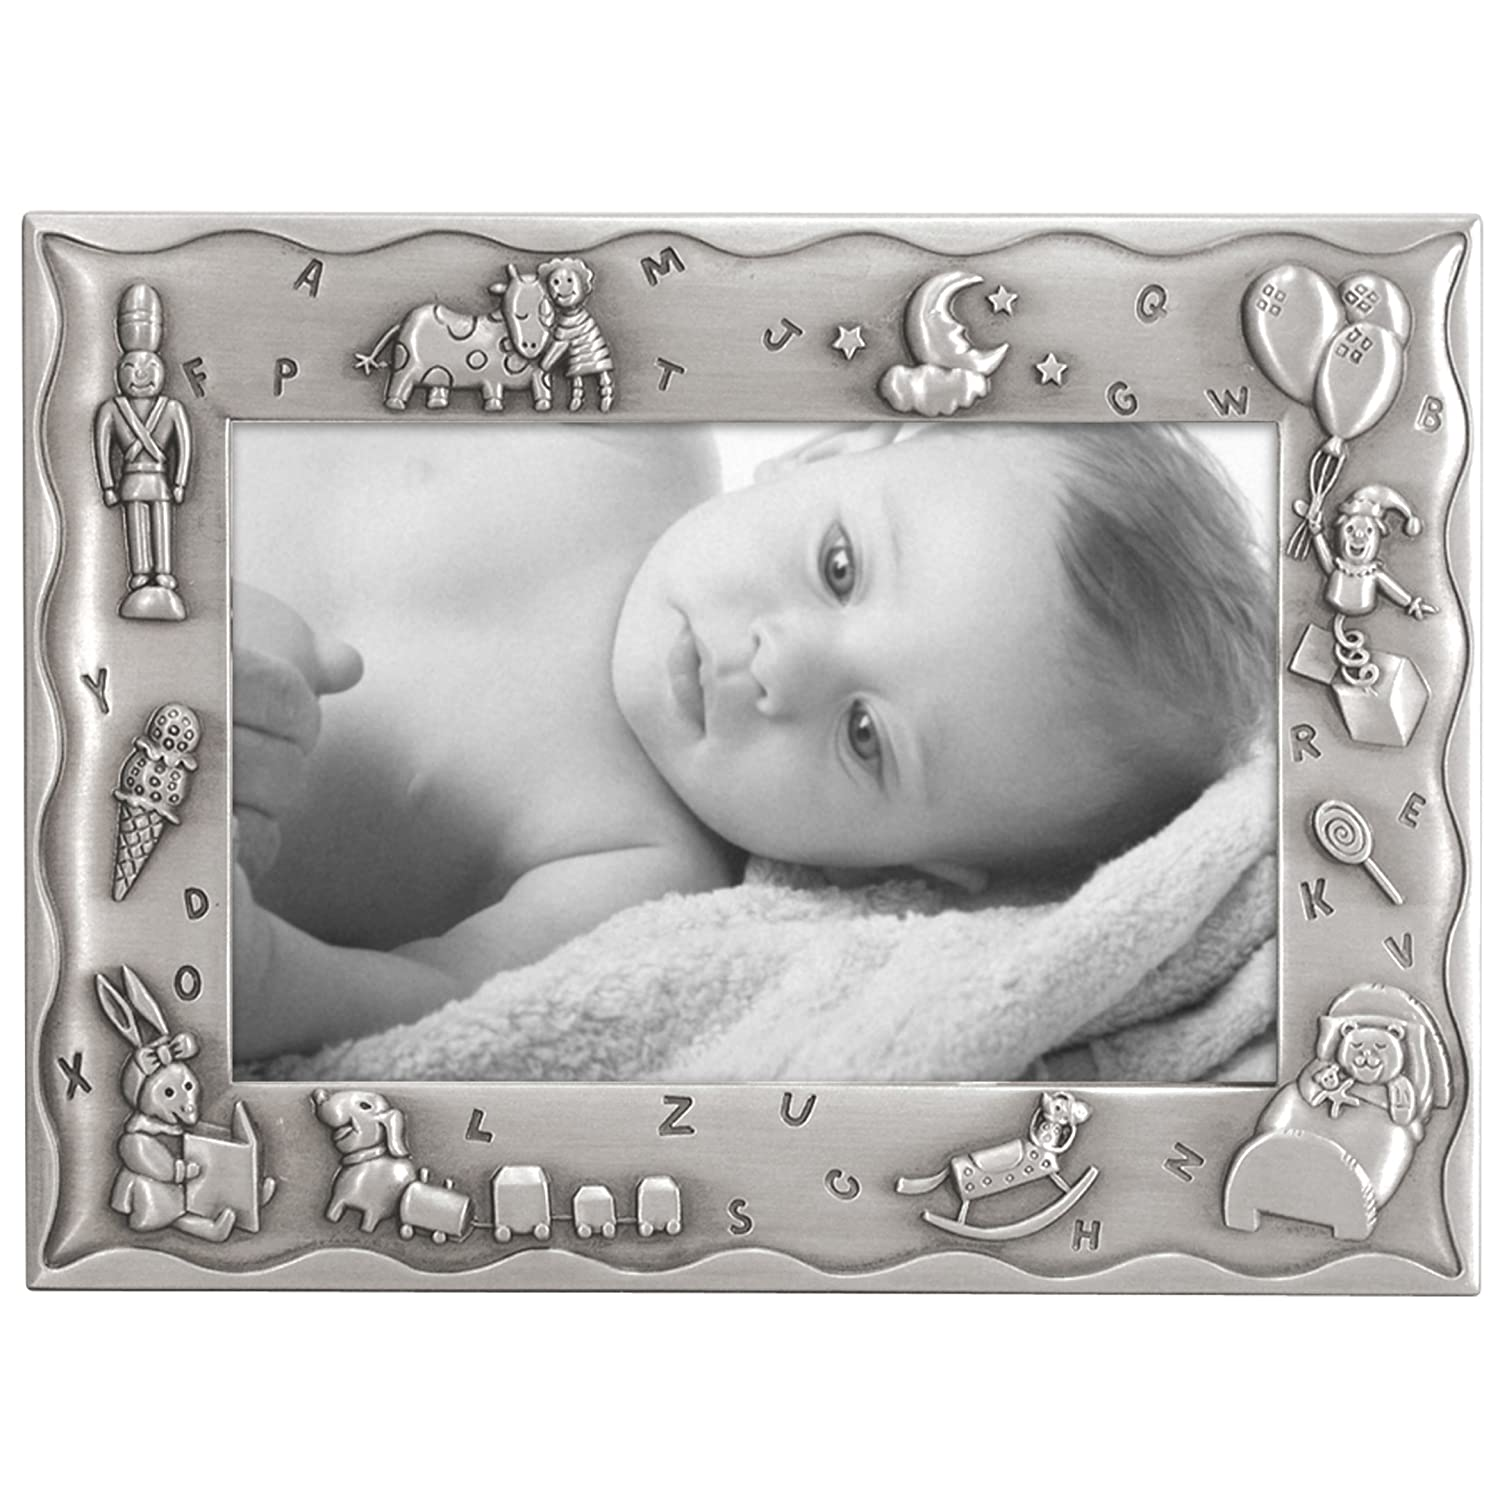 Malden Sweet Dreams Baby Metal Picture Frame Malden International 6249-46